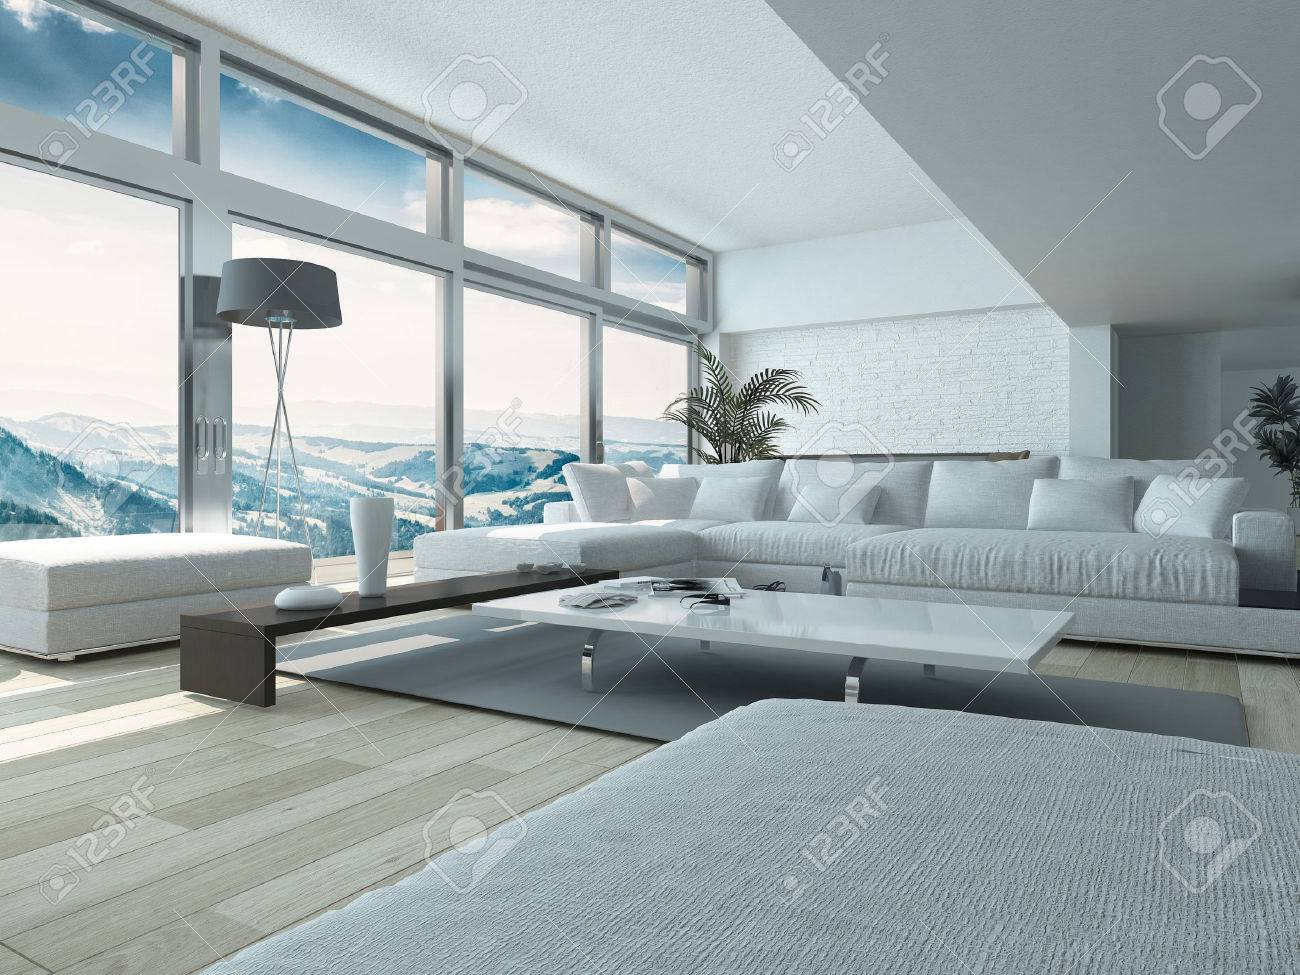 Modern Living Room Design, with Elegant White Couches and Table,..